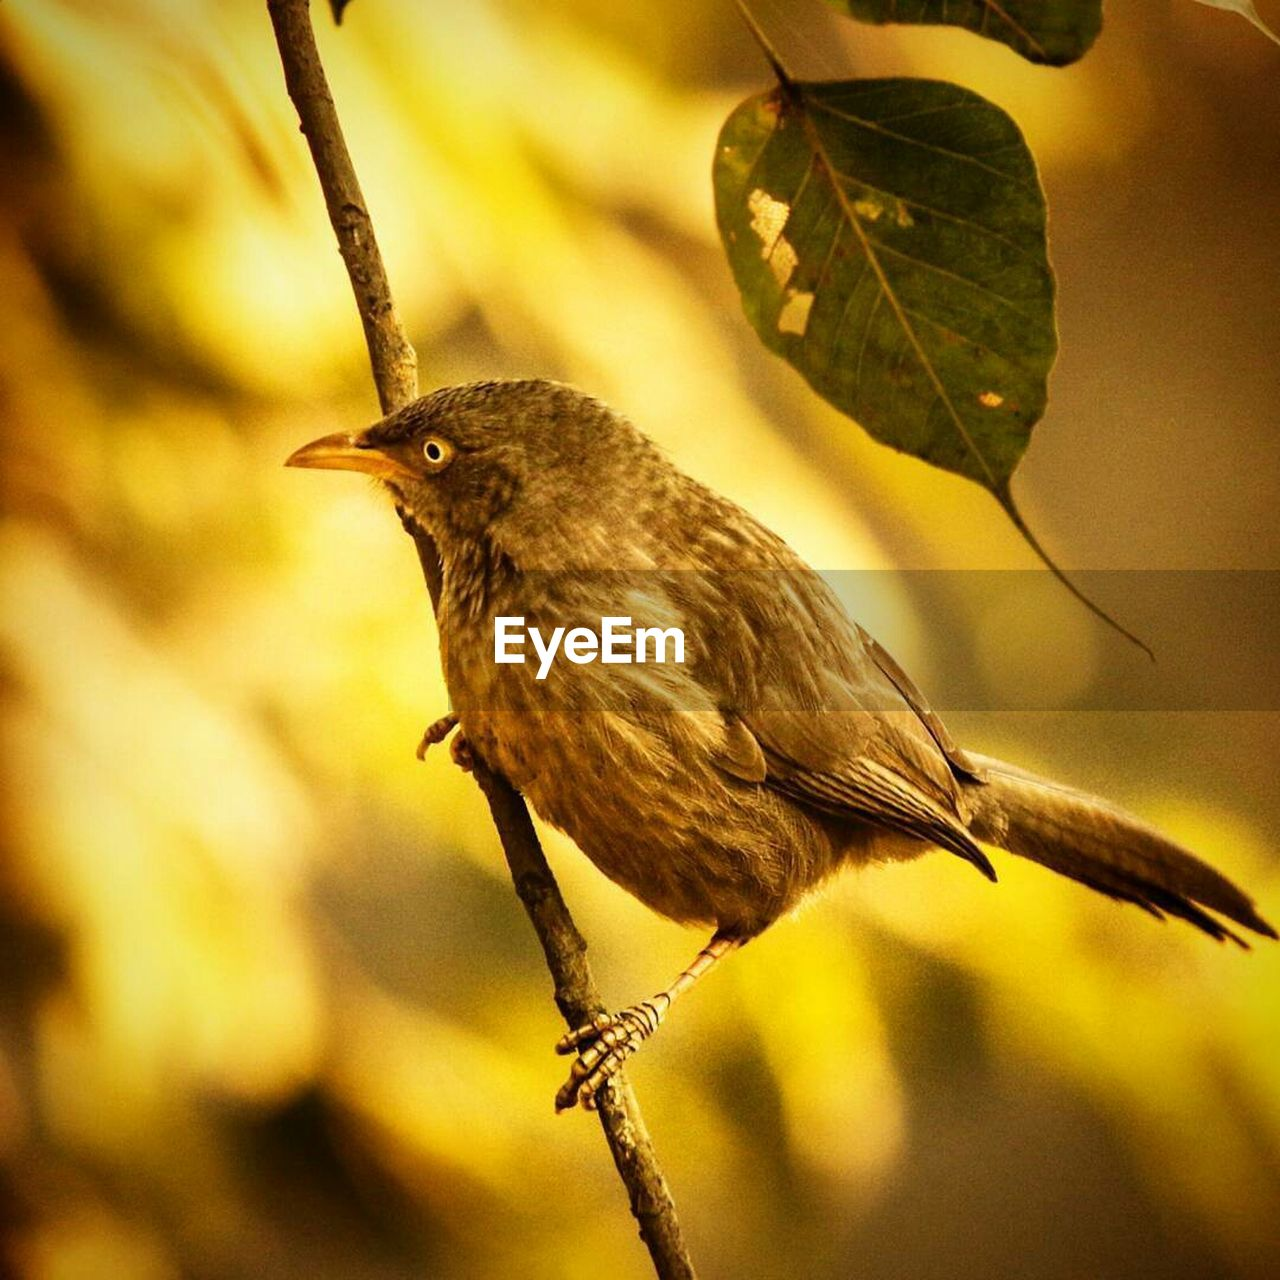 bird, animal themes, vertebrate, animal, animals in the wild, animal wildlife, one animal, perching, plant, close-up, focus on foreground, branch, plant part, leaf, no people, nature, tree, day, outdoors, twig